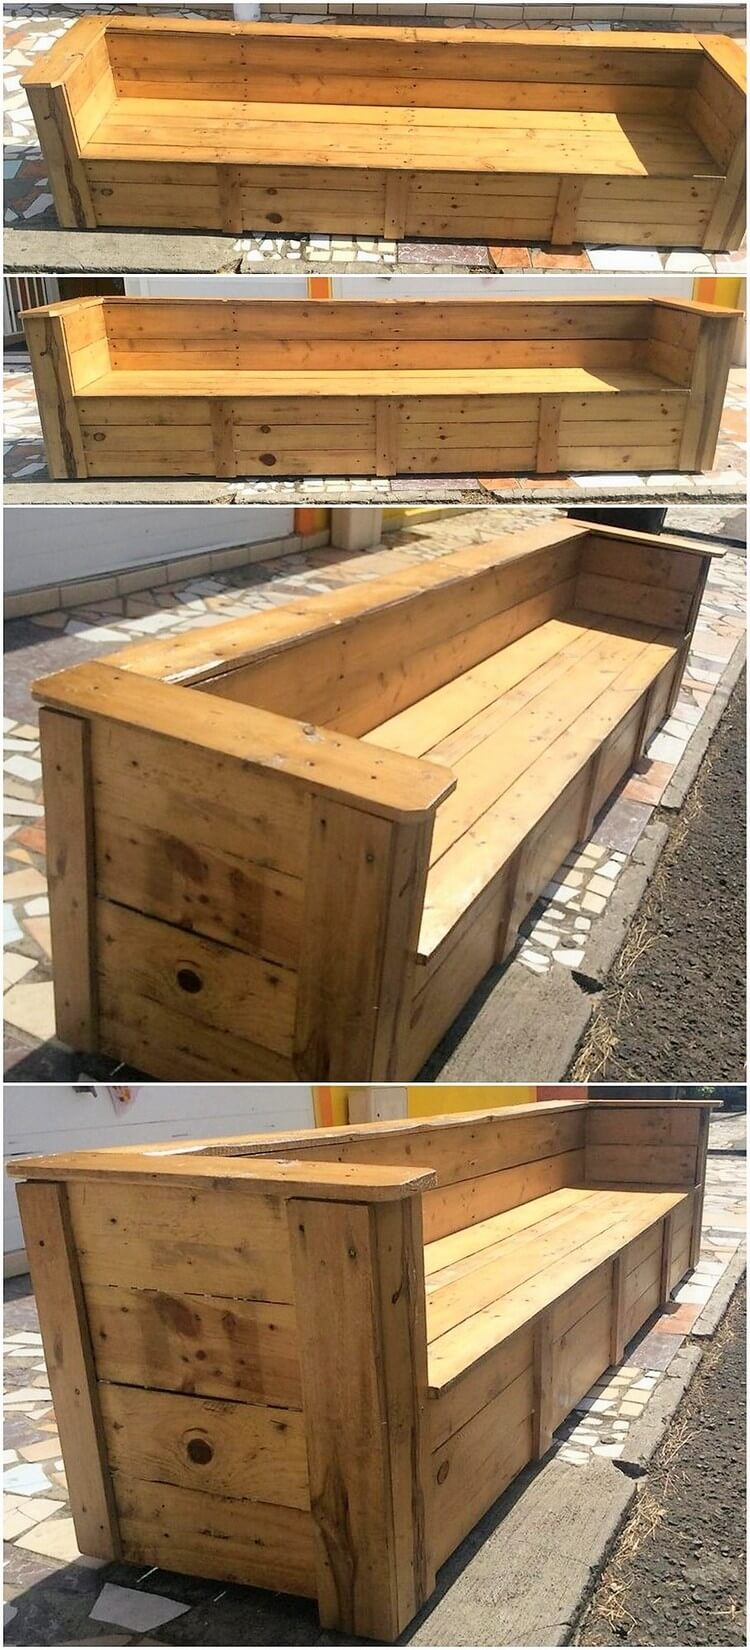 Prime Useful Diy Projects For Reusing Old Wooden Pallets Lamtechconsult Wood Chair Design Ideas Lamtechconsultcom